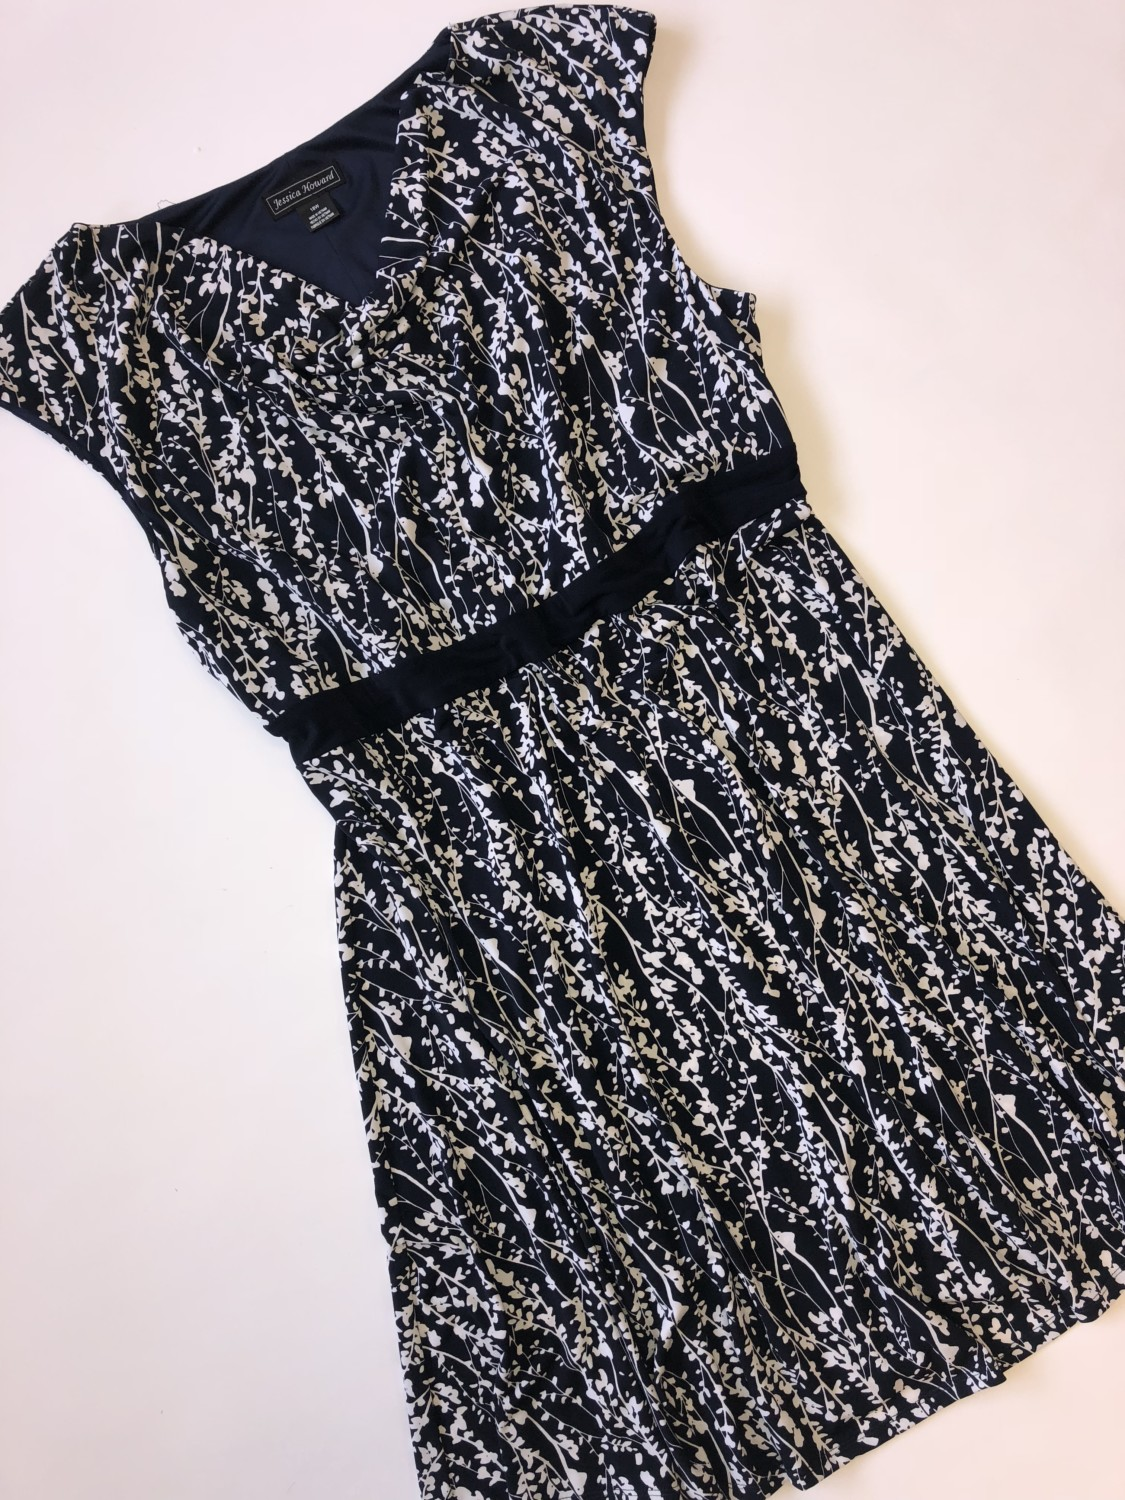 Jessica Howard Dress – Original Retail: $79, CWS: $20